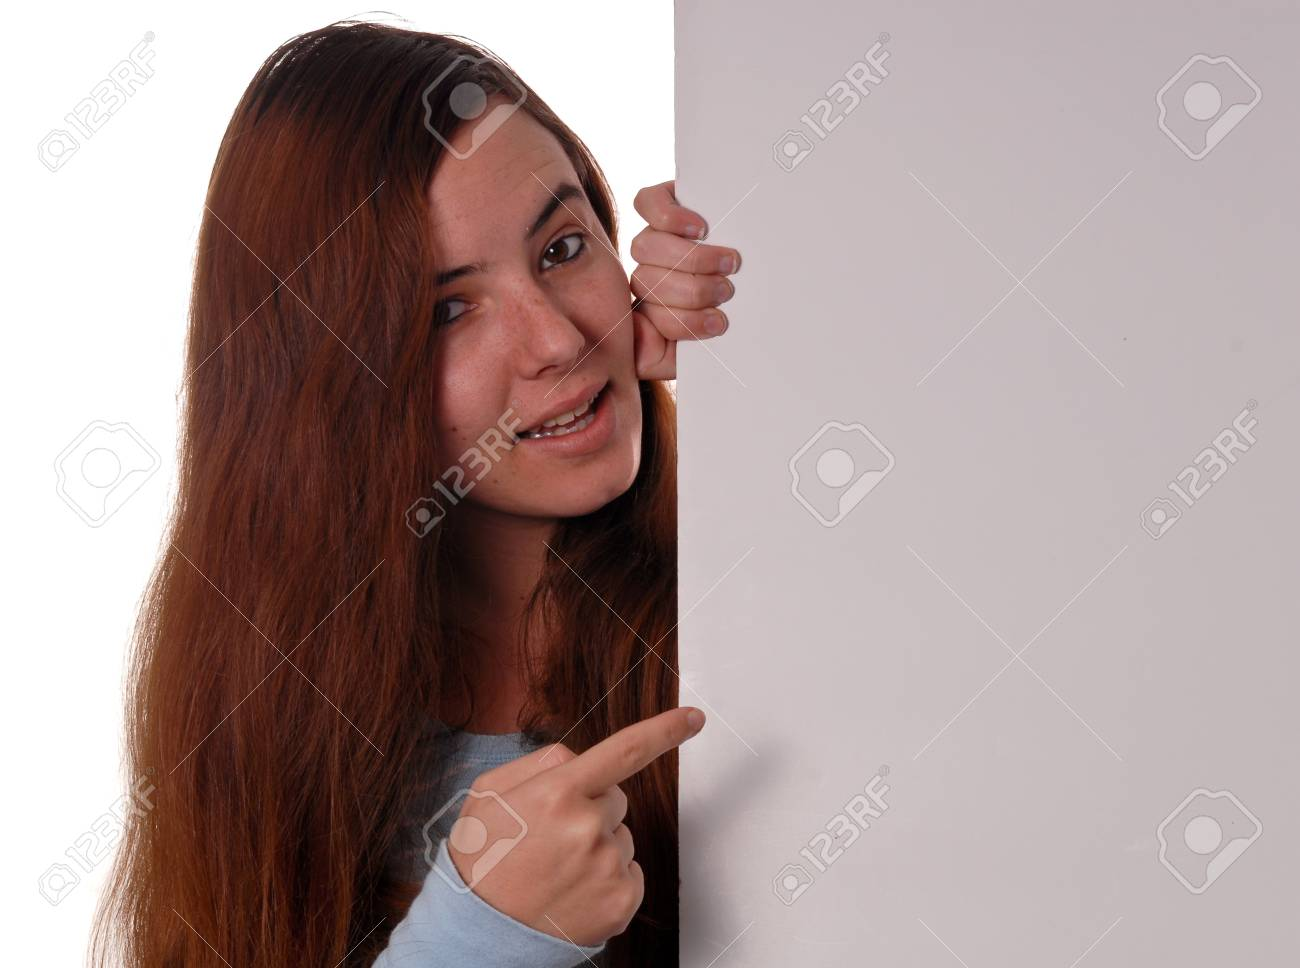 Girl Pointing at Blank Poster (Custom Space for Text) Stock Photo - 9198311